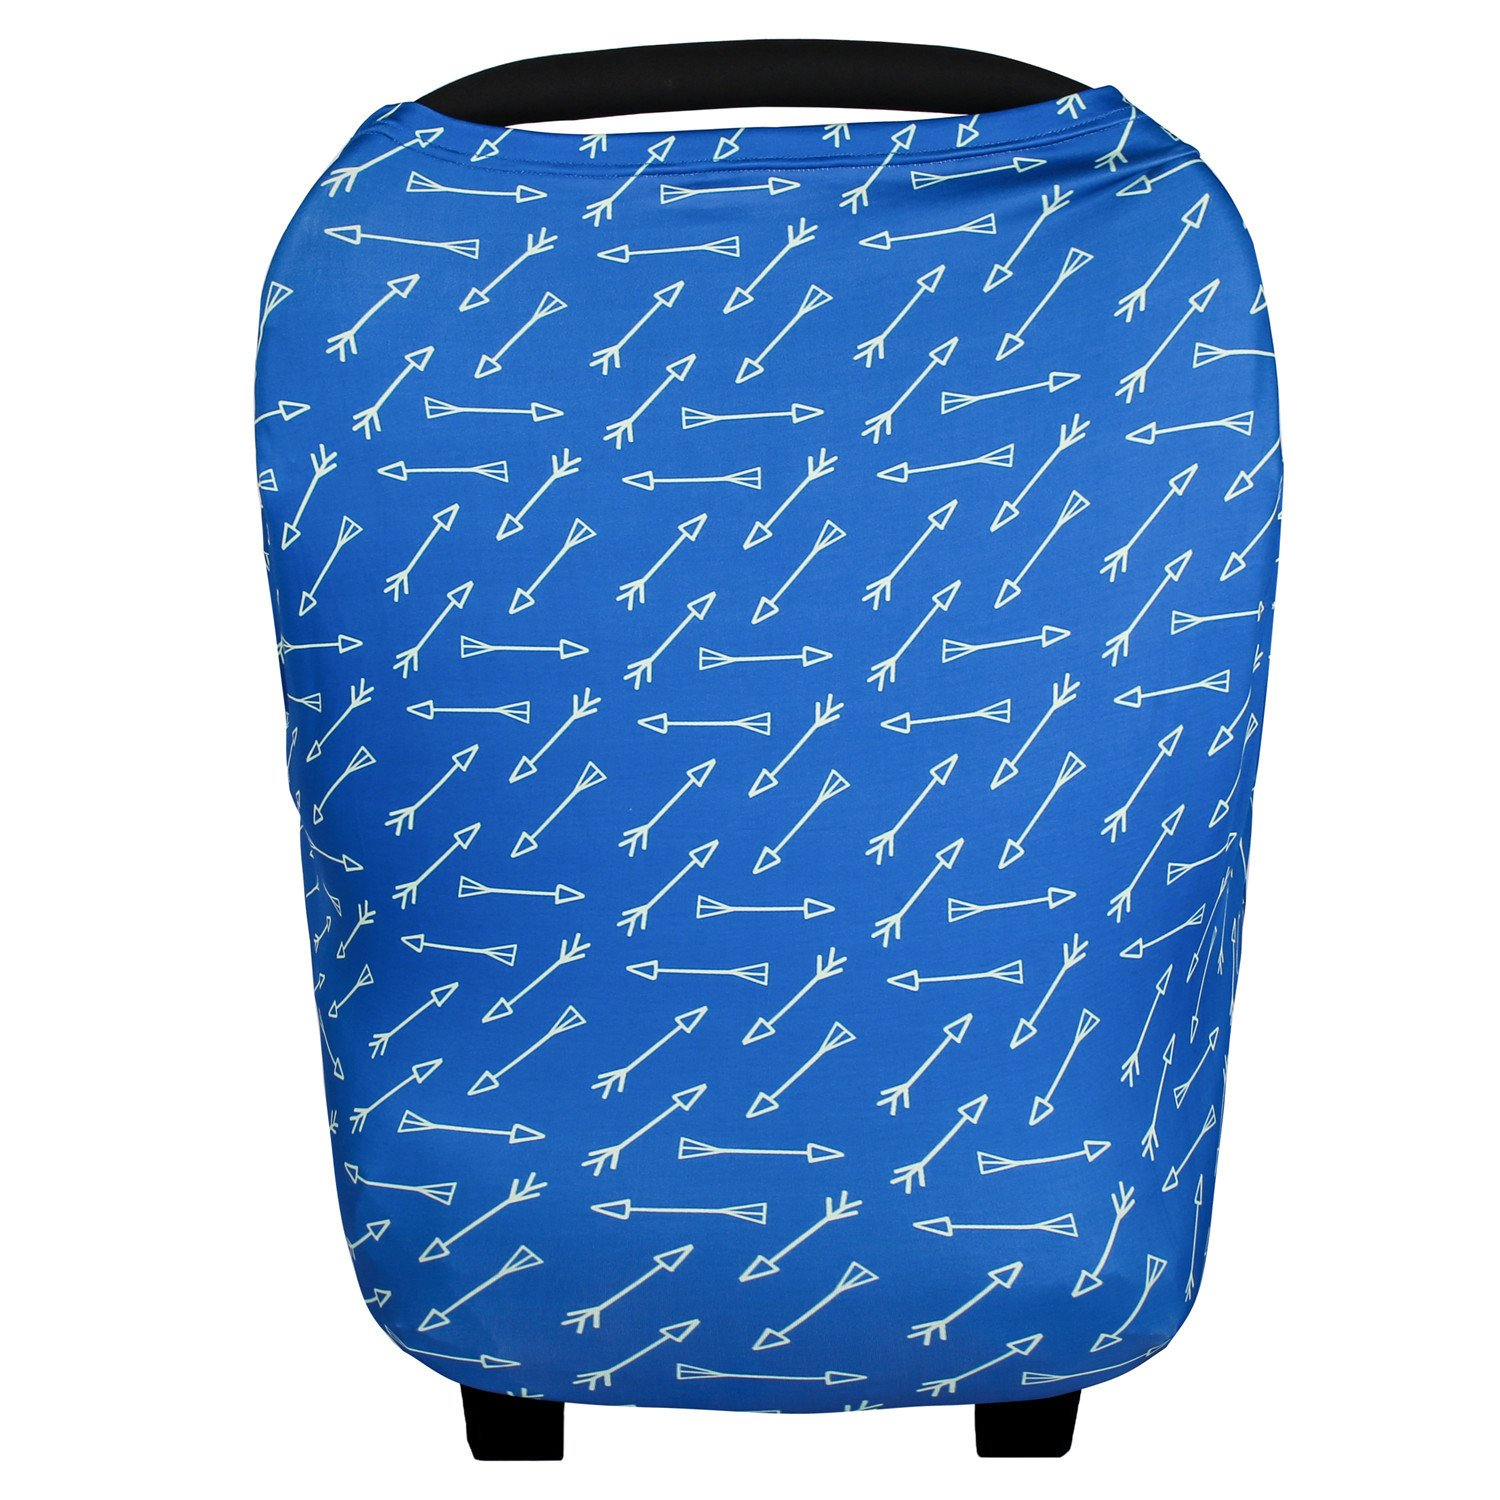 Storeofbaby Infant Car Seat Canopy for Boy Stretchy Shopping Cart, Stroller Covers CanopiesCoverA_ca